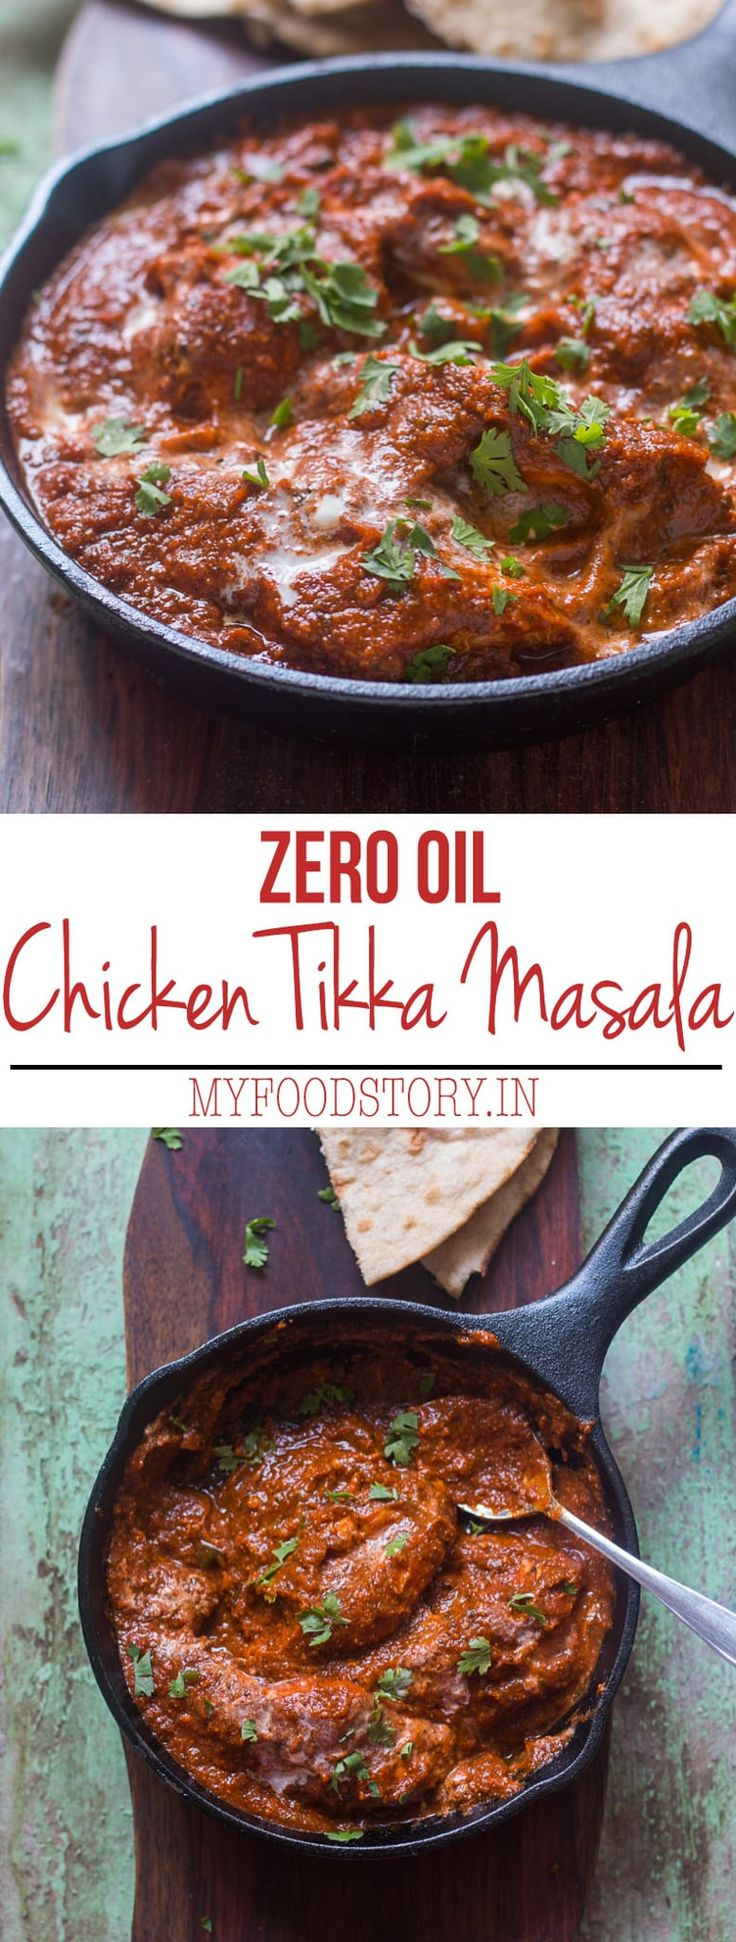 A chicken tikka masala recipe which uses zero oil, is healthy and low in calories while retaining the taste that the restaurant version has.